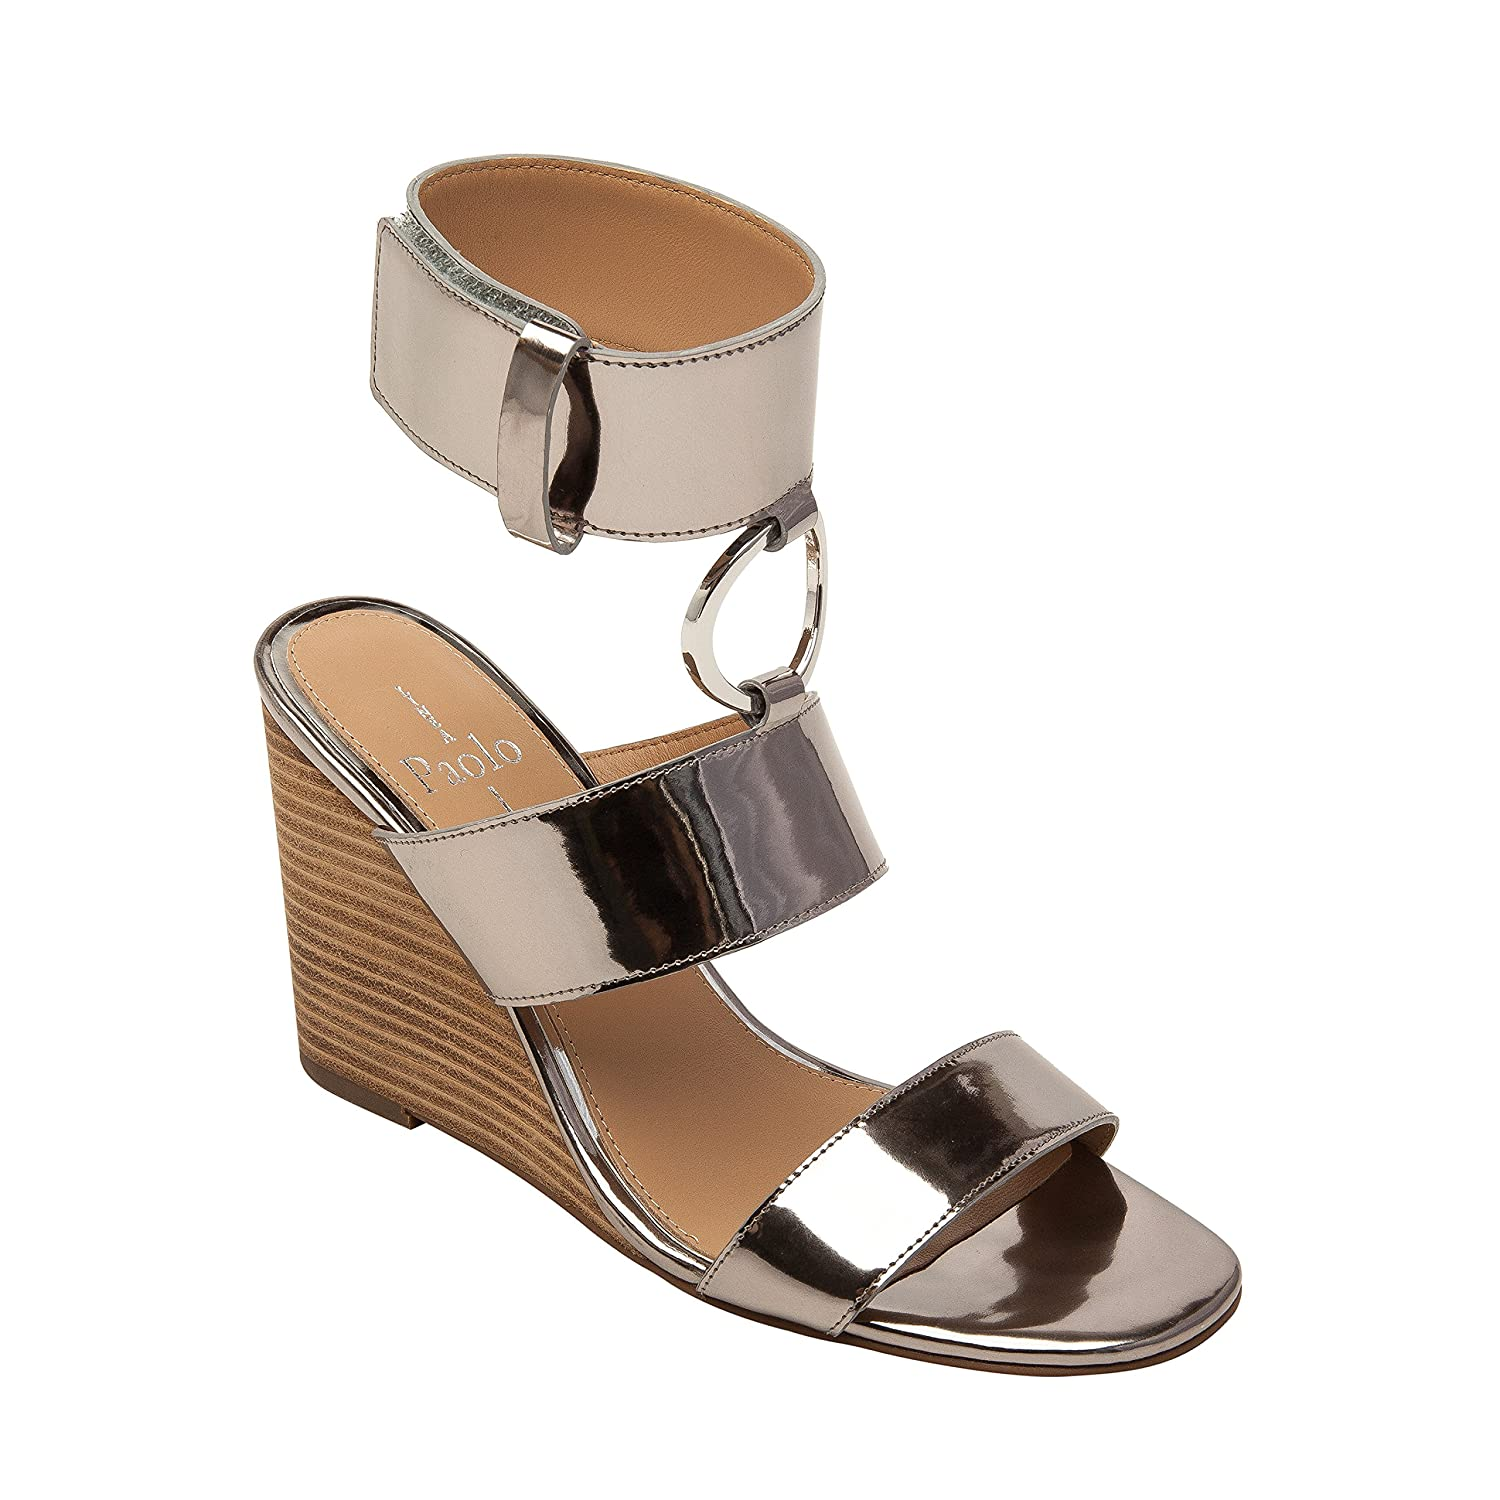 Linea Paolo EVA | Women's Metal Ring Adorned Cuffed Comfortable Wedge Sandal B07956RCH4 6.5 M US|Silver Leather